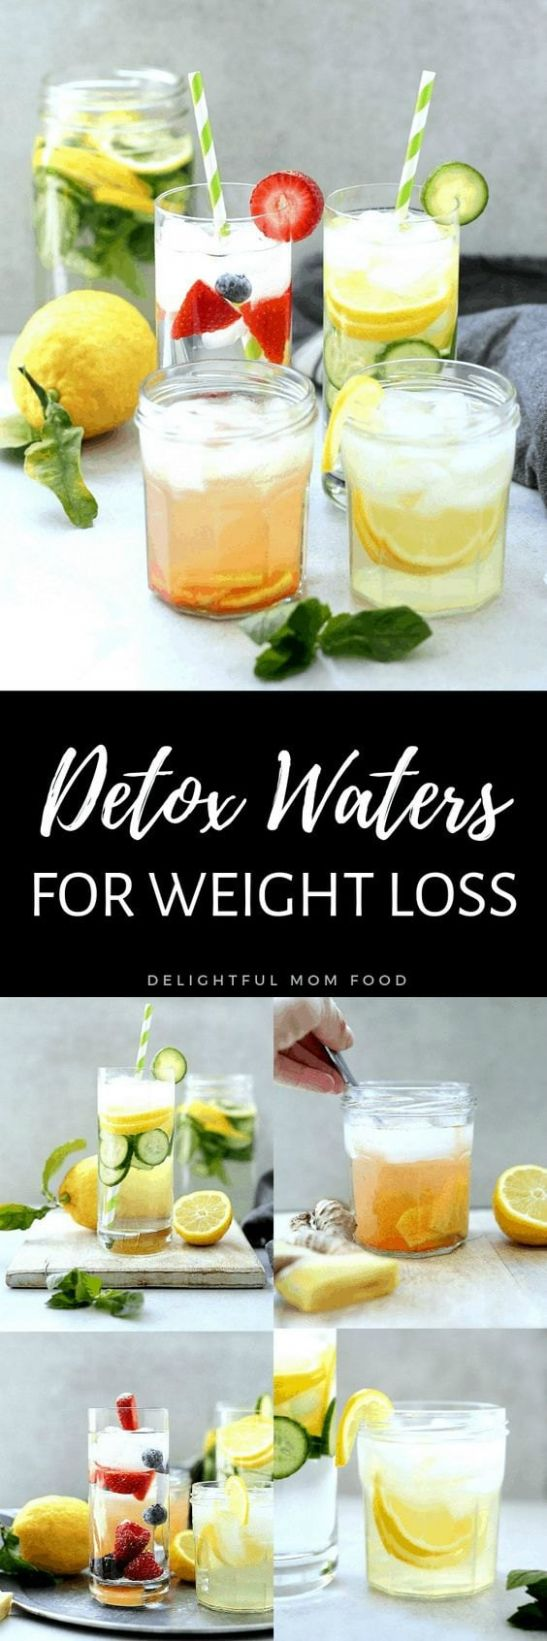 11 Detox Water Recipes For Weight Loss & Body Cleanse | Delightful ..